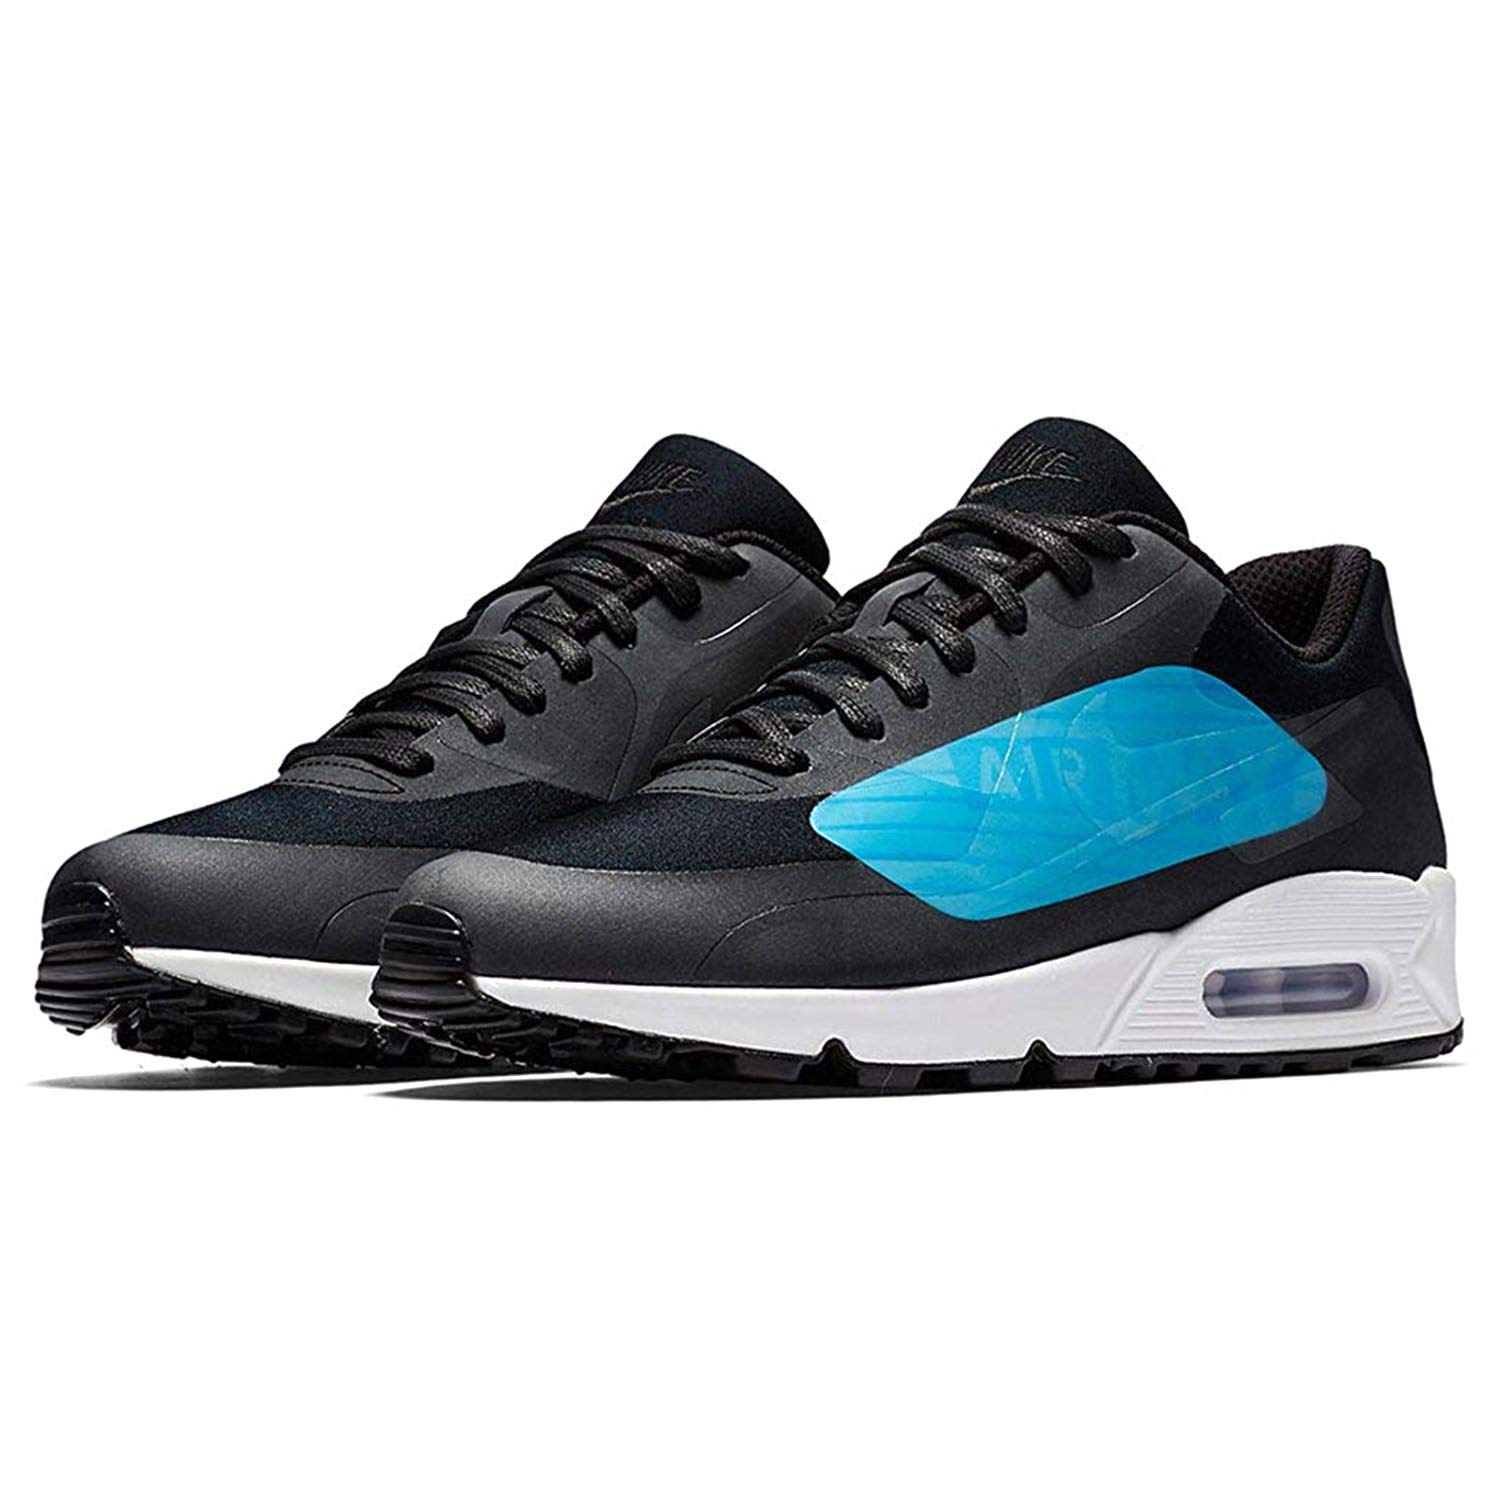 timeless design 0519e b1196 Galleon - Nike Air Max 90 NS GPX Mens Running Trainers AJ7182 Sneakers Shoes  (10 D(M) US, Black Laser Blue)